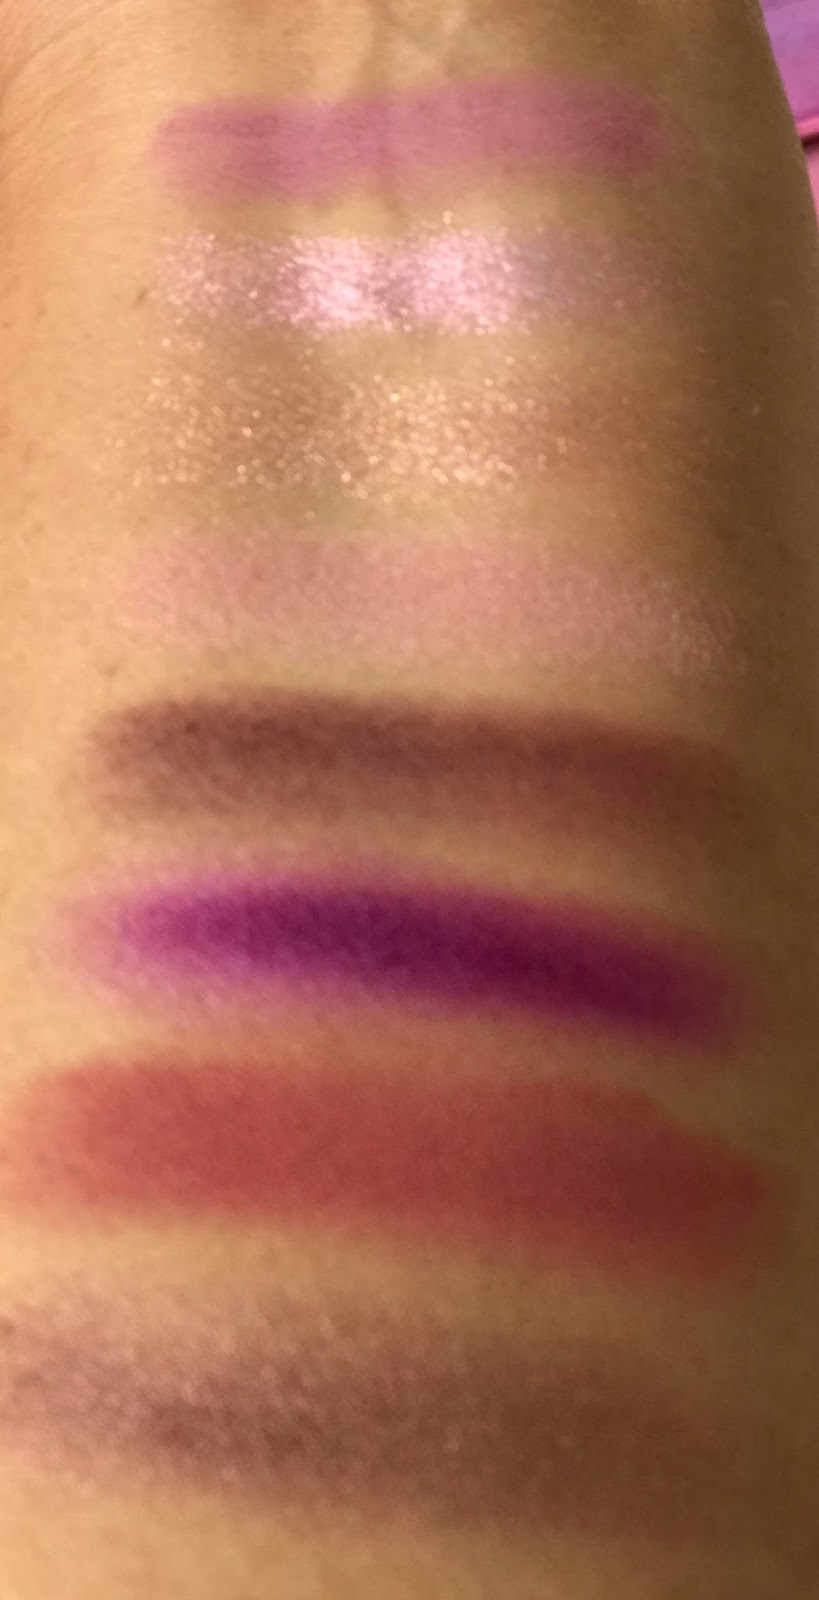 Lime Crime Venus 3 review & swatches